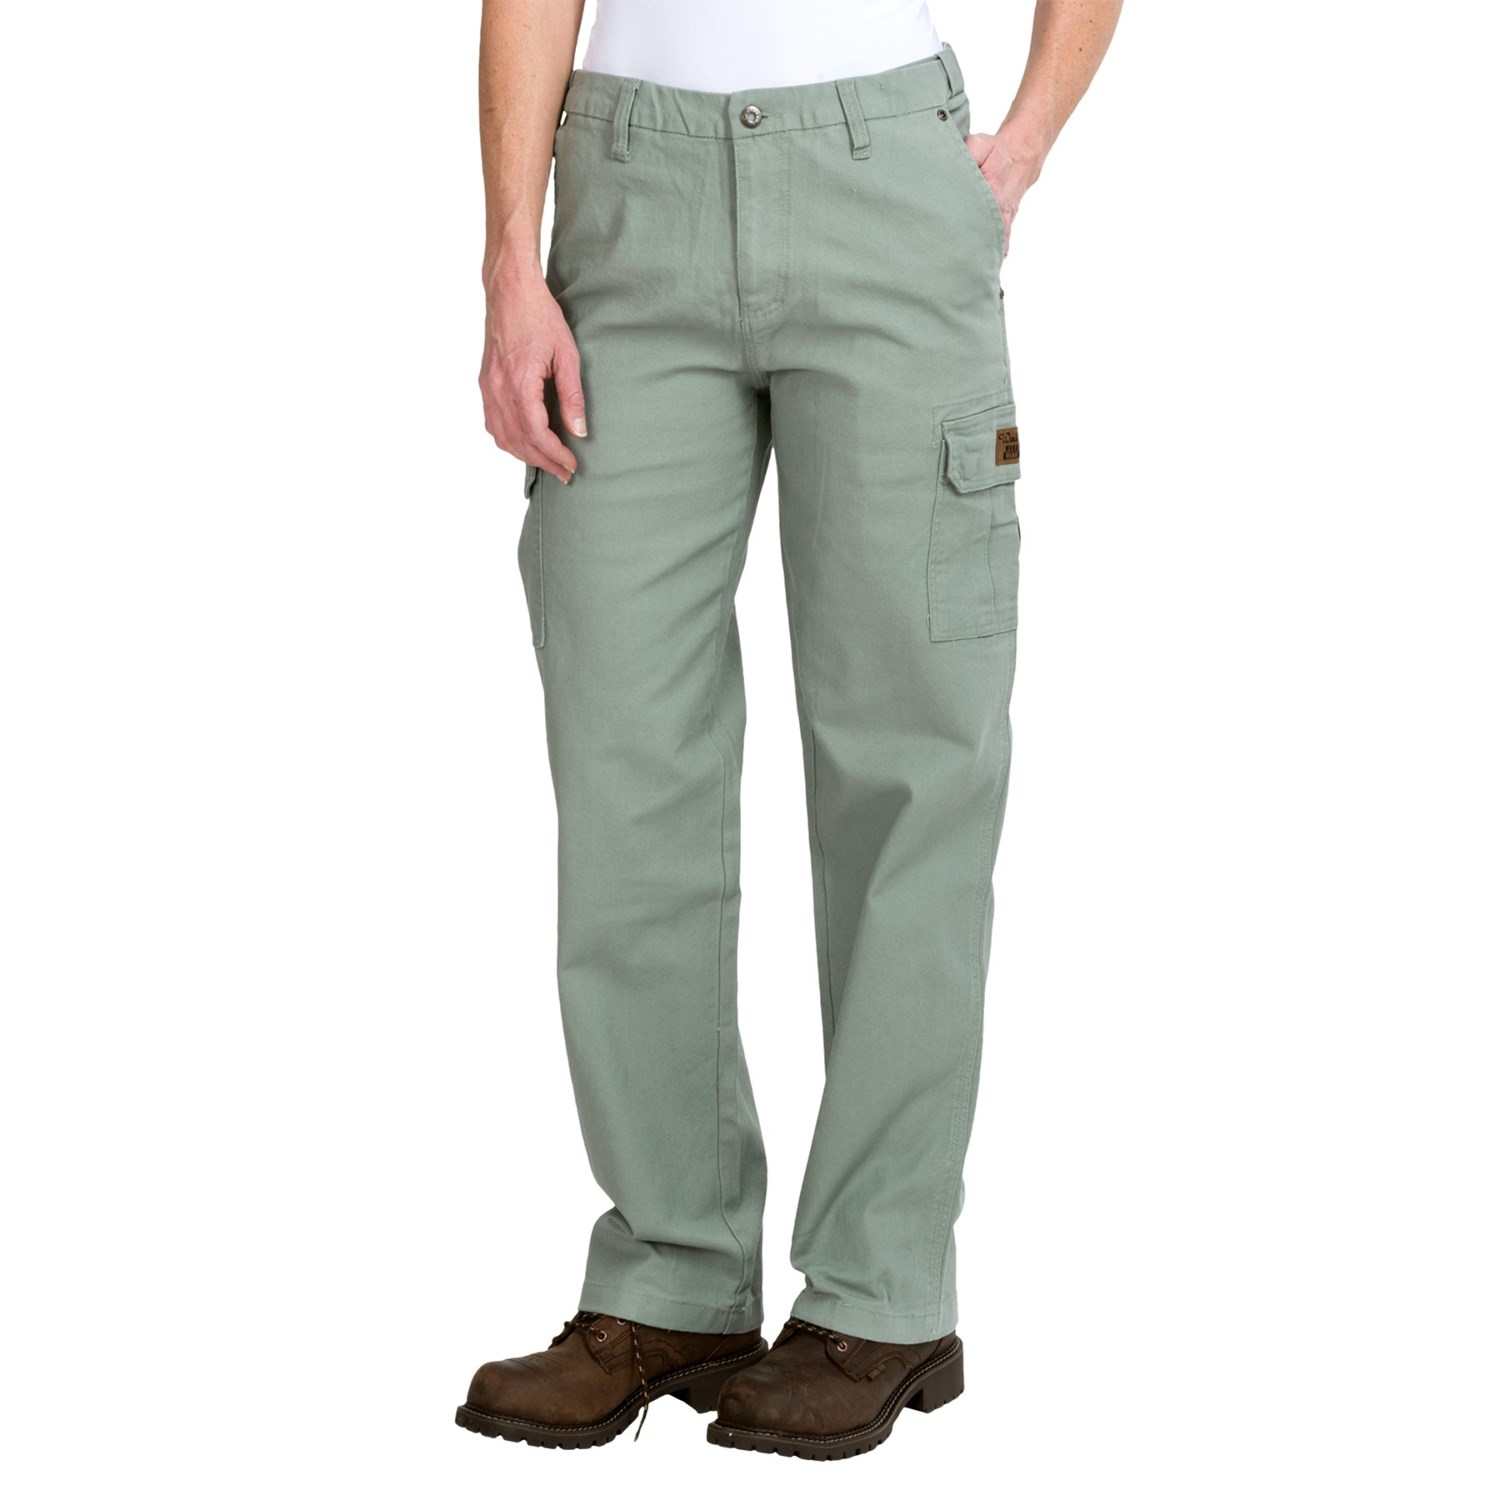 Creative Urbanboutique Womens Military Style Trousers Are Of Soft Feel And Are Perfectly Made For All Seasons It Has Six